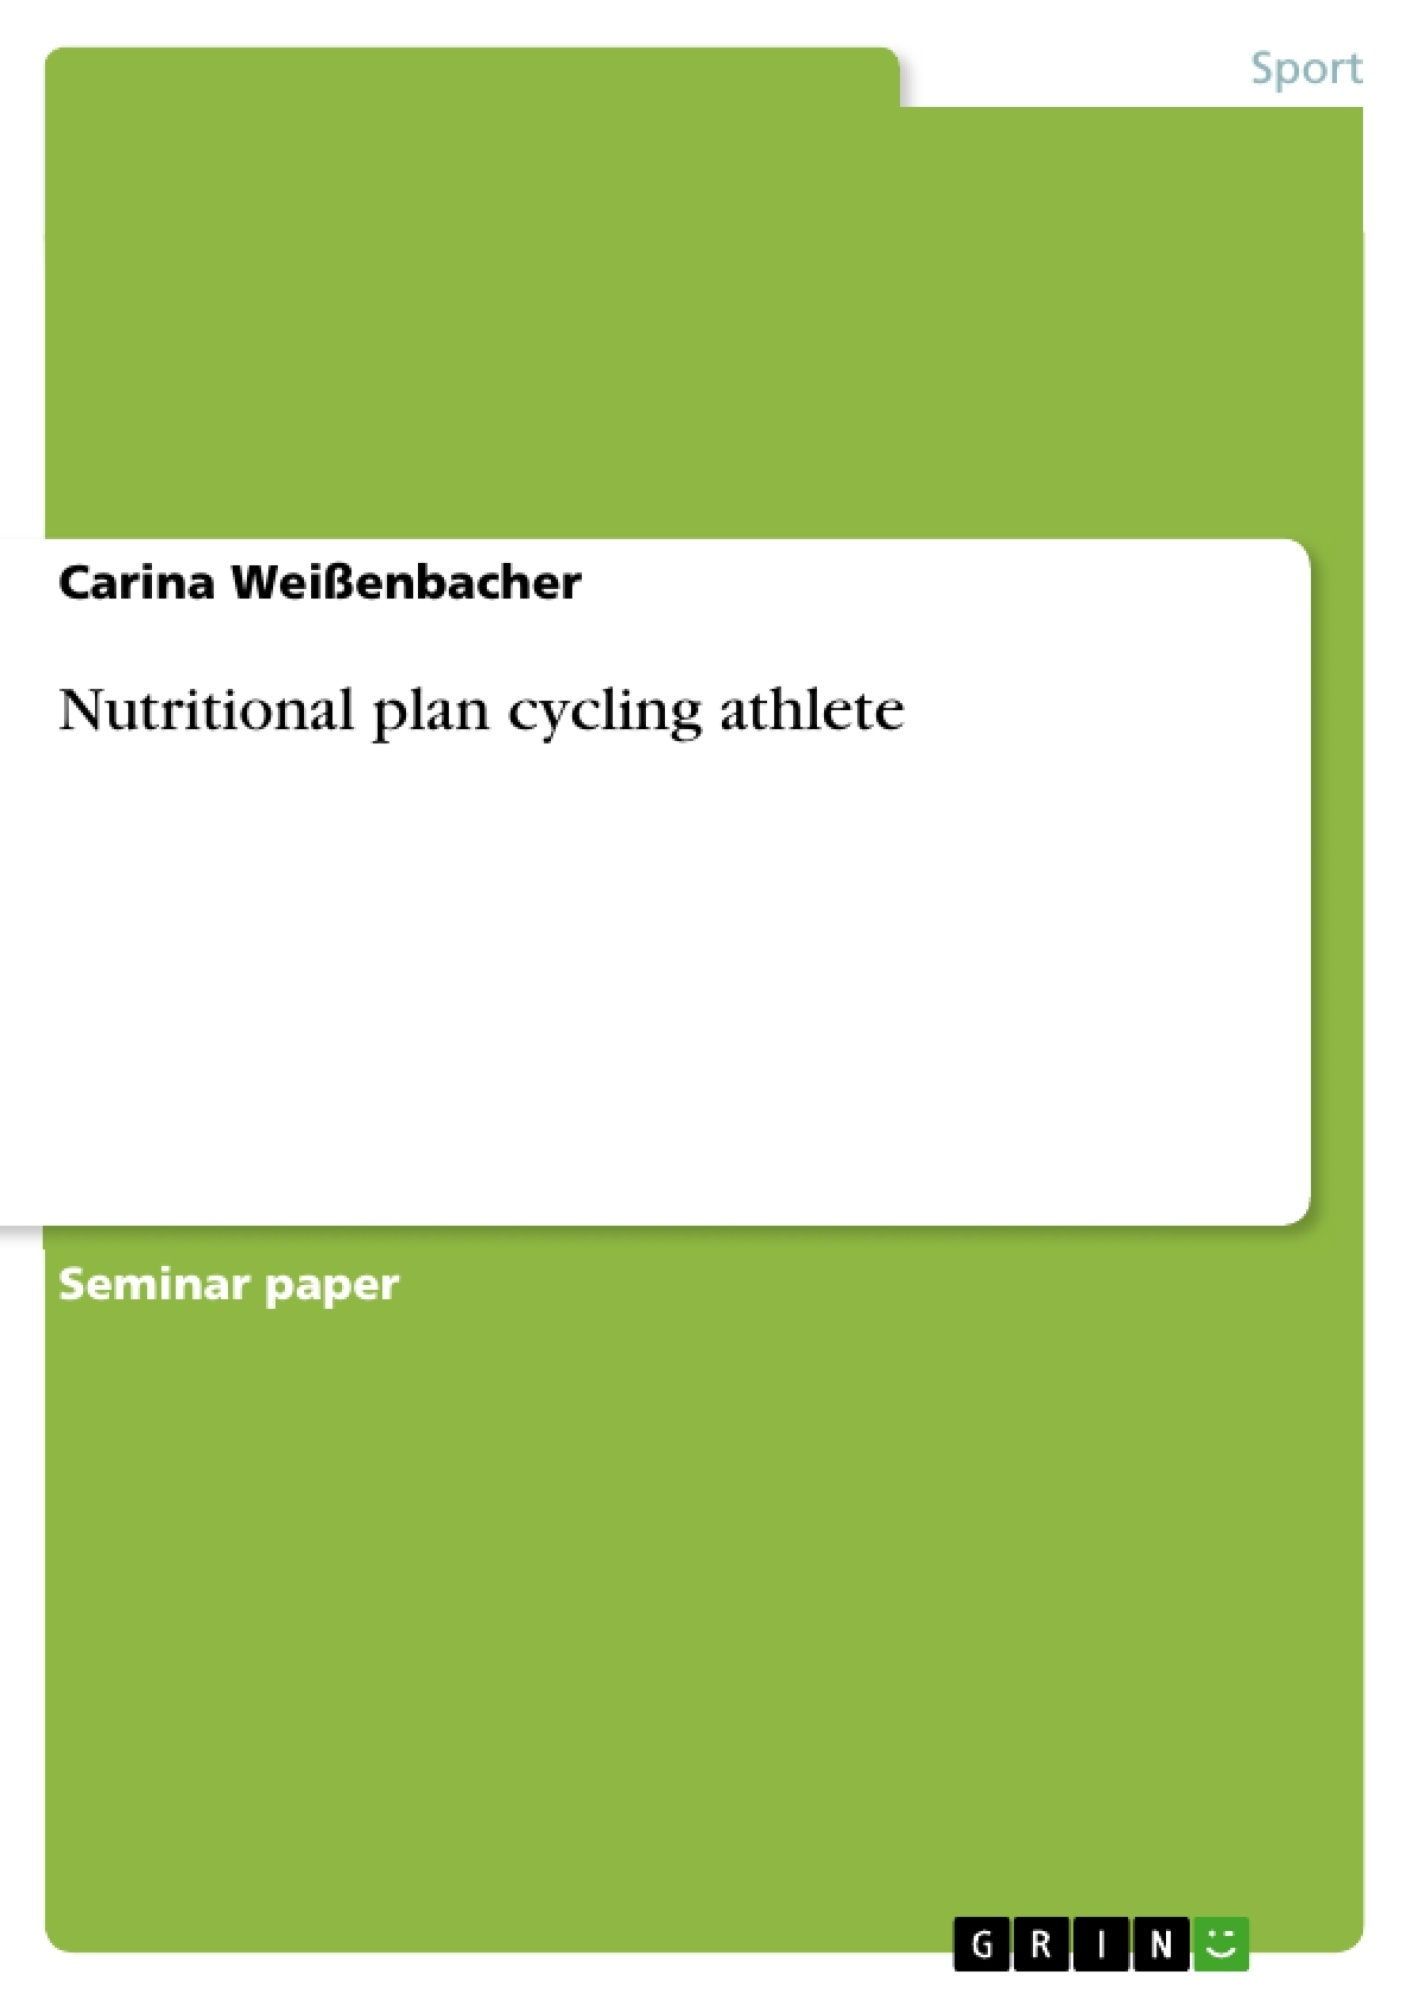 Title: Nutritional plan cycling athlete